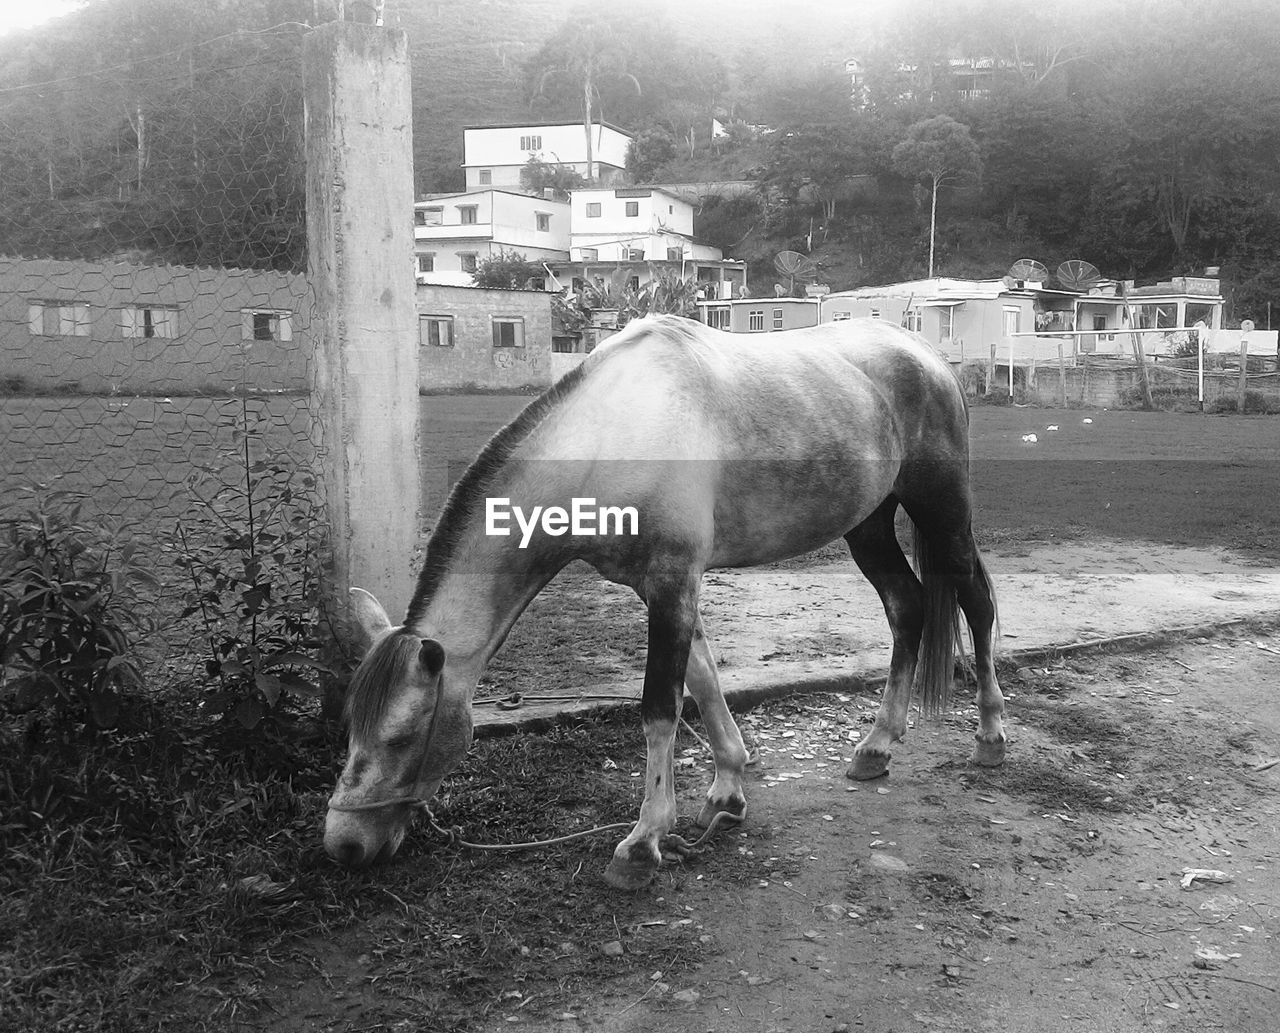 horse, domestic animals, animal themes, livestock, mammal, one animal, built structure, outdoors, building exterior, no people, day, architecture, nature, tree